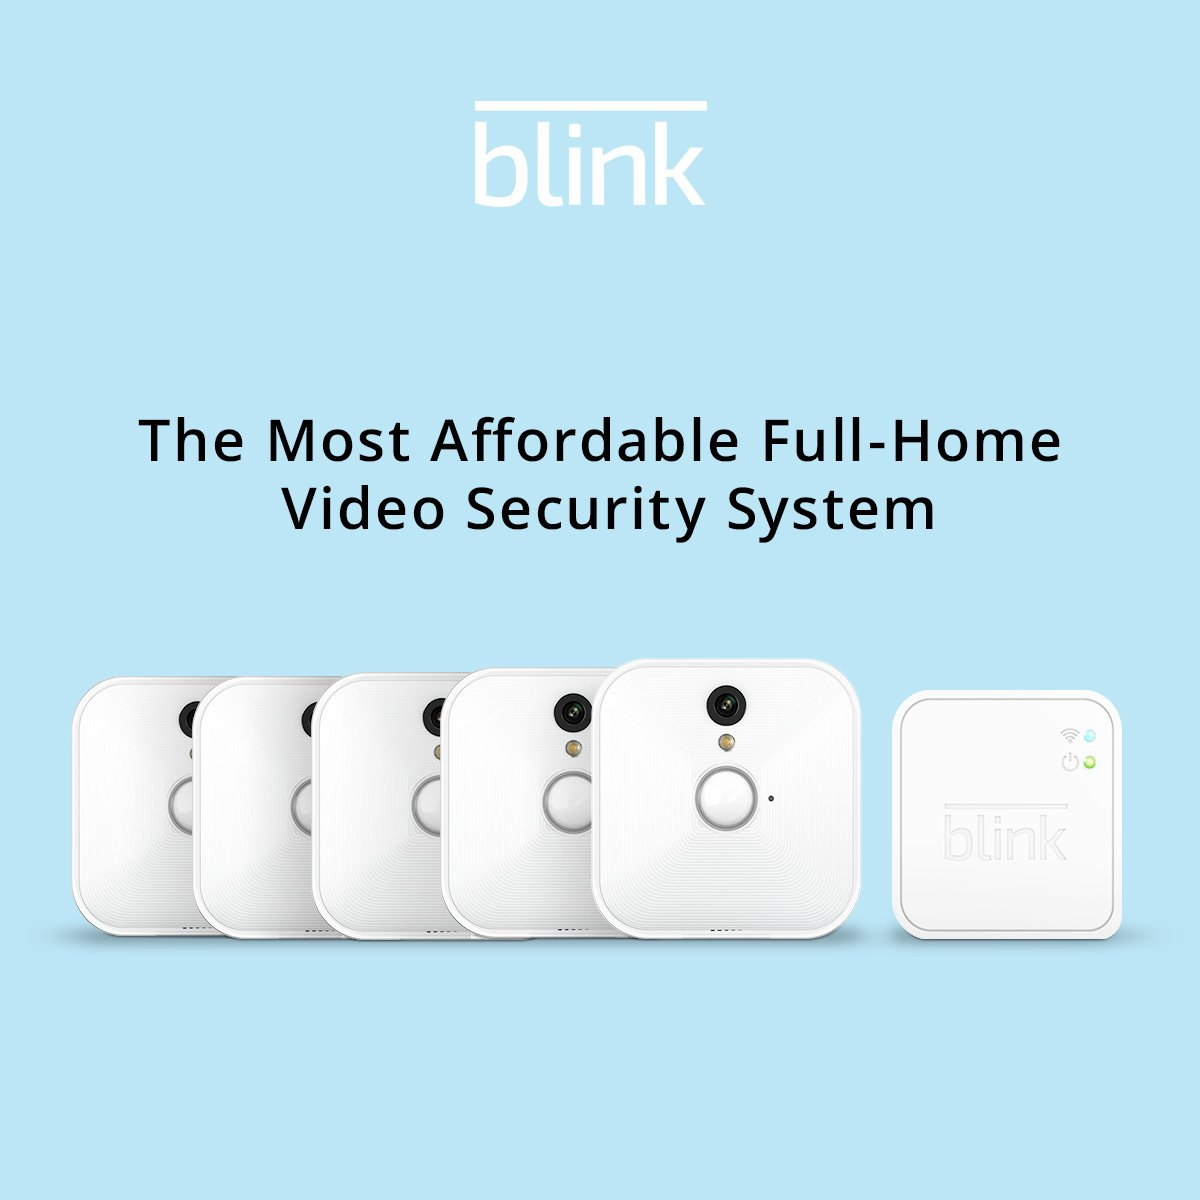 blink blinkforhome twitter the most affordable full home video security system at its lowest price ever